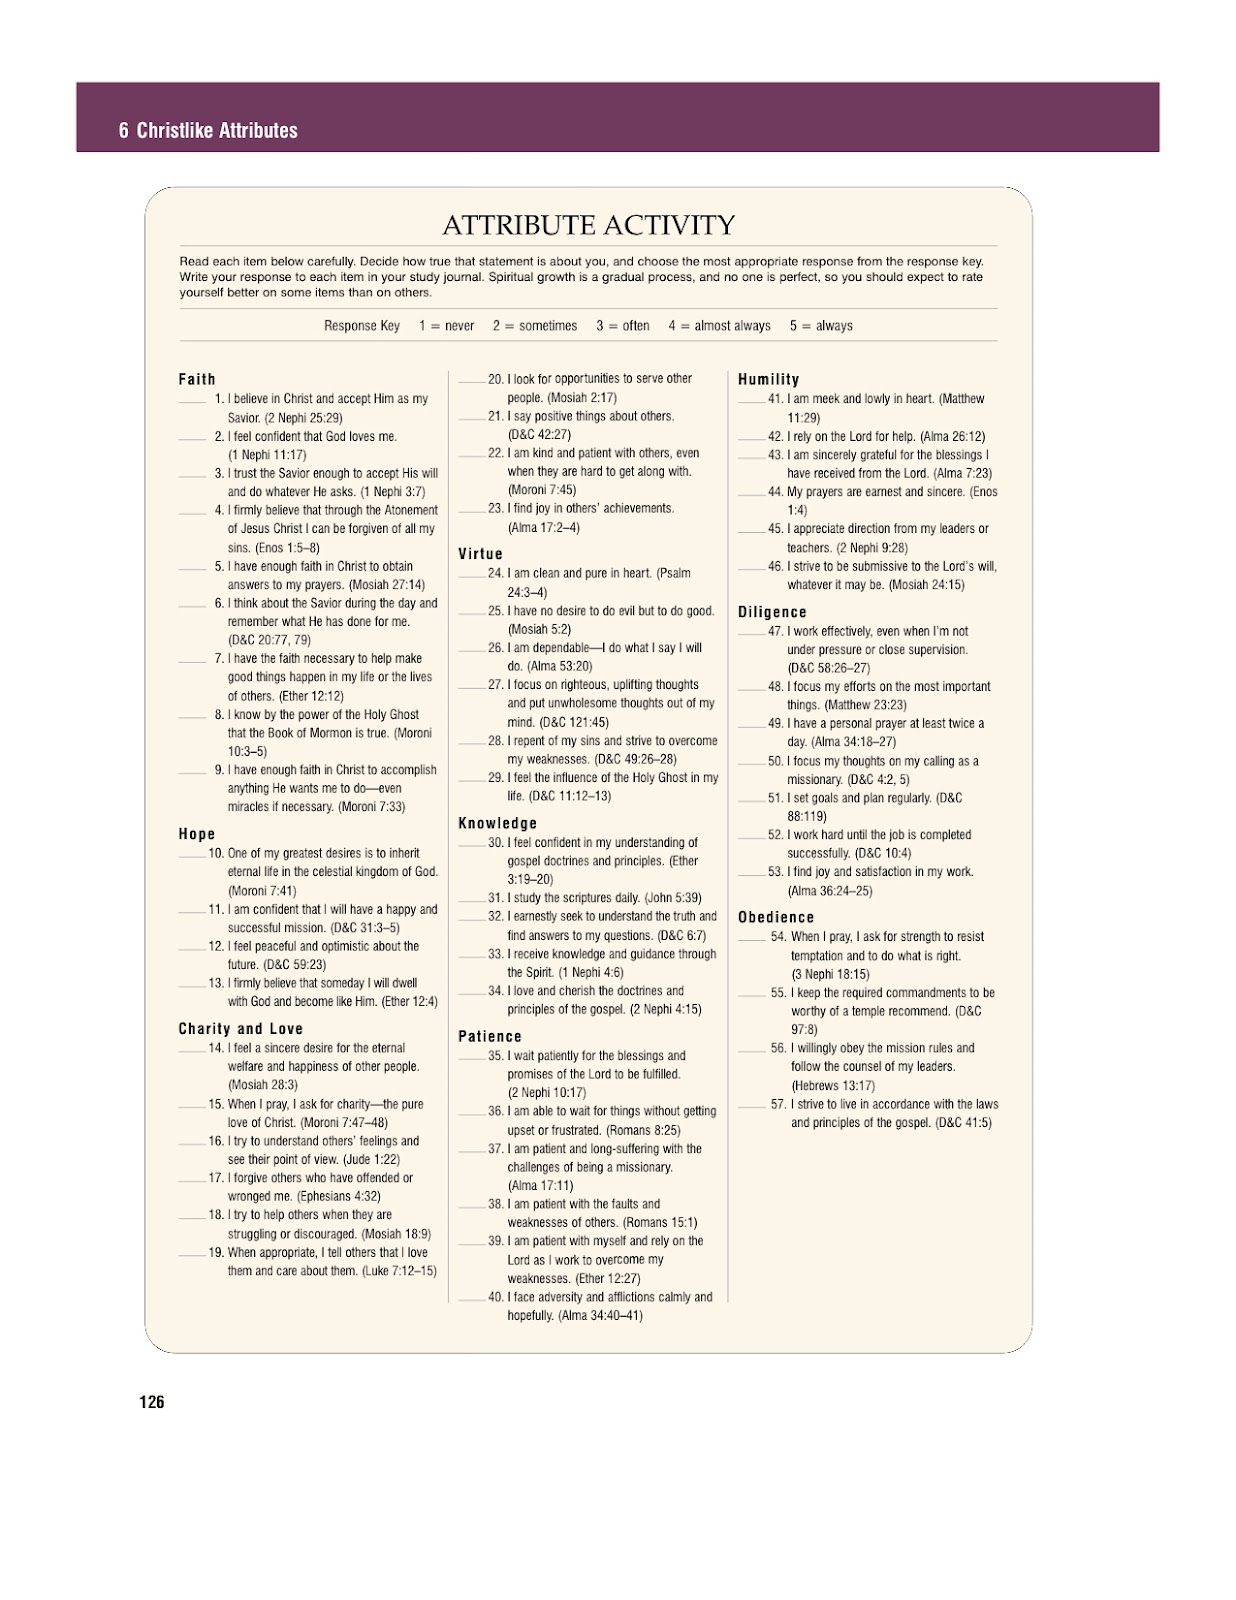 Charity never faileth book of mormon reading chart for Table attributes